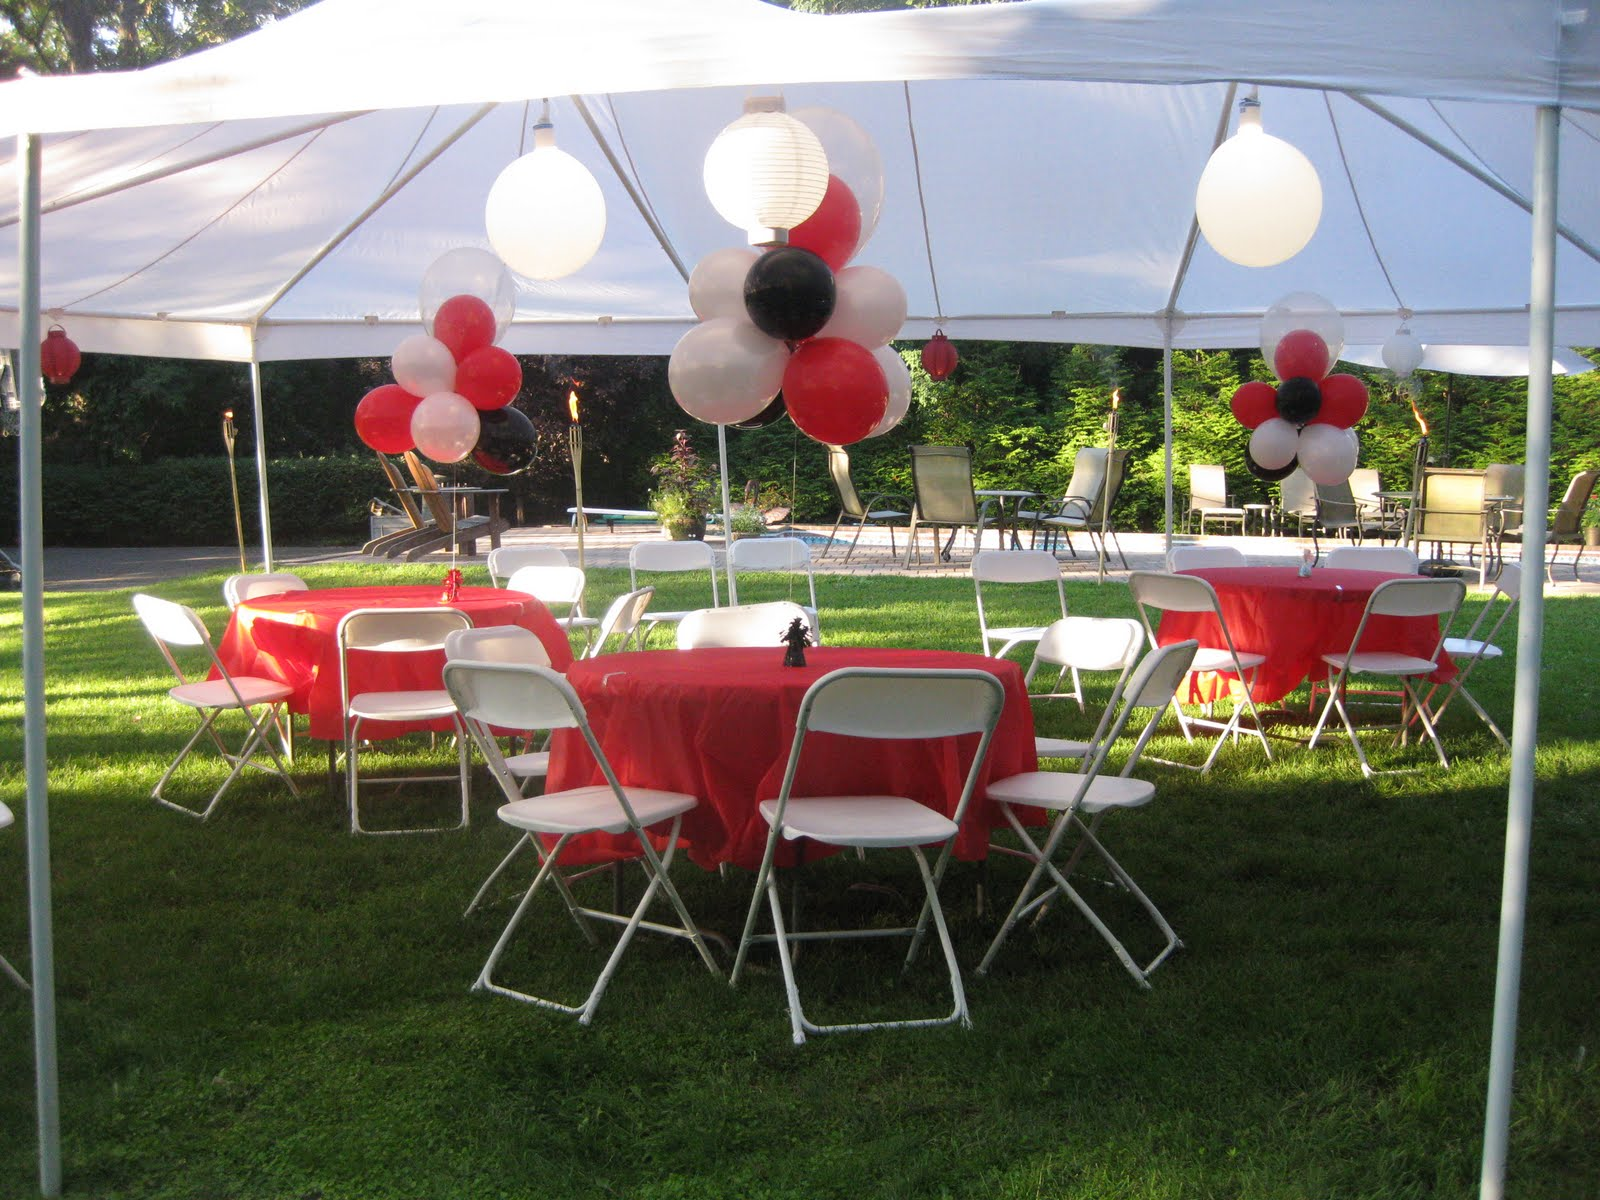 Party planning at your liking august 2010 for Outdoor party tent decorating ideas